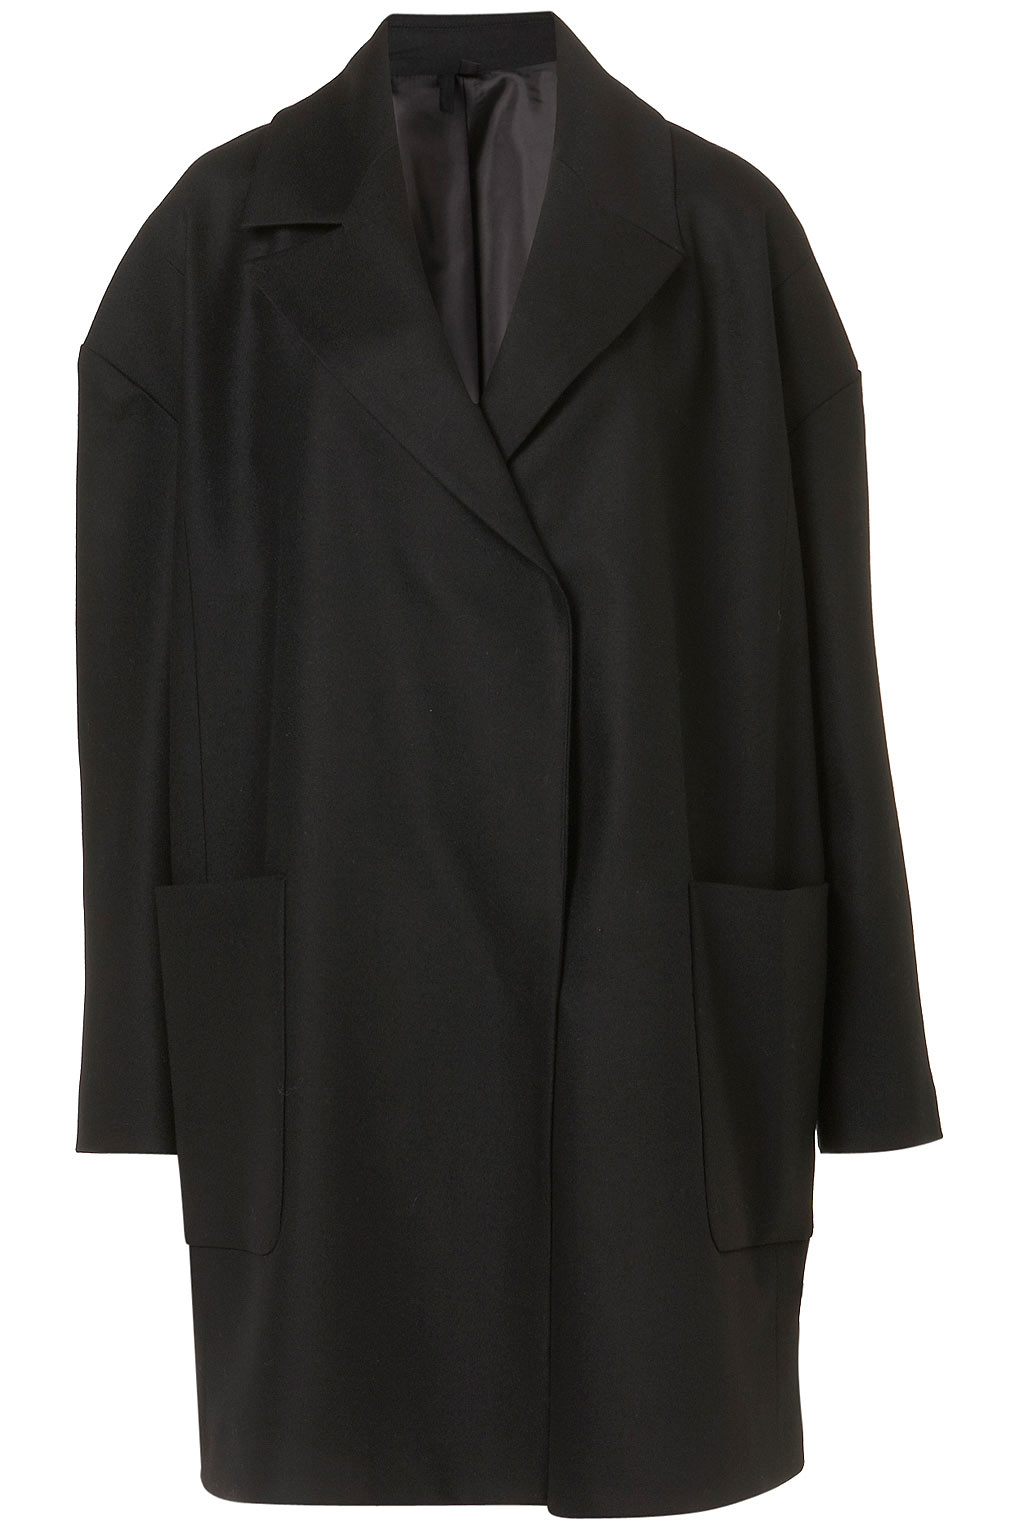 Lyst Topshop Oversized Mens Blazer By Boutique In Black